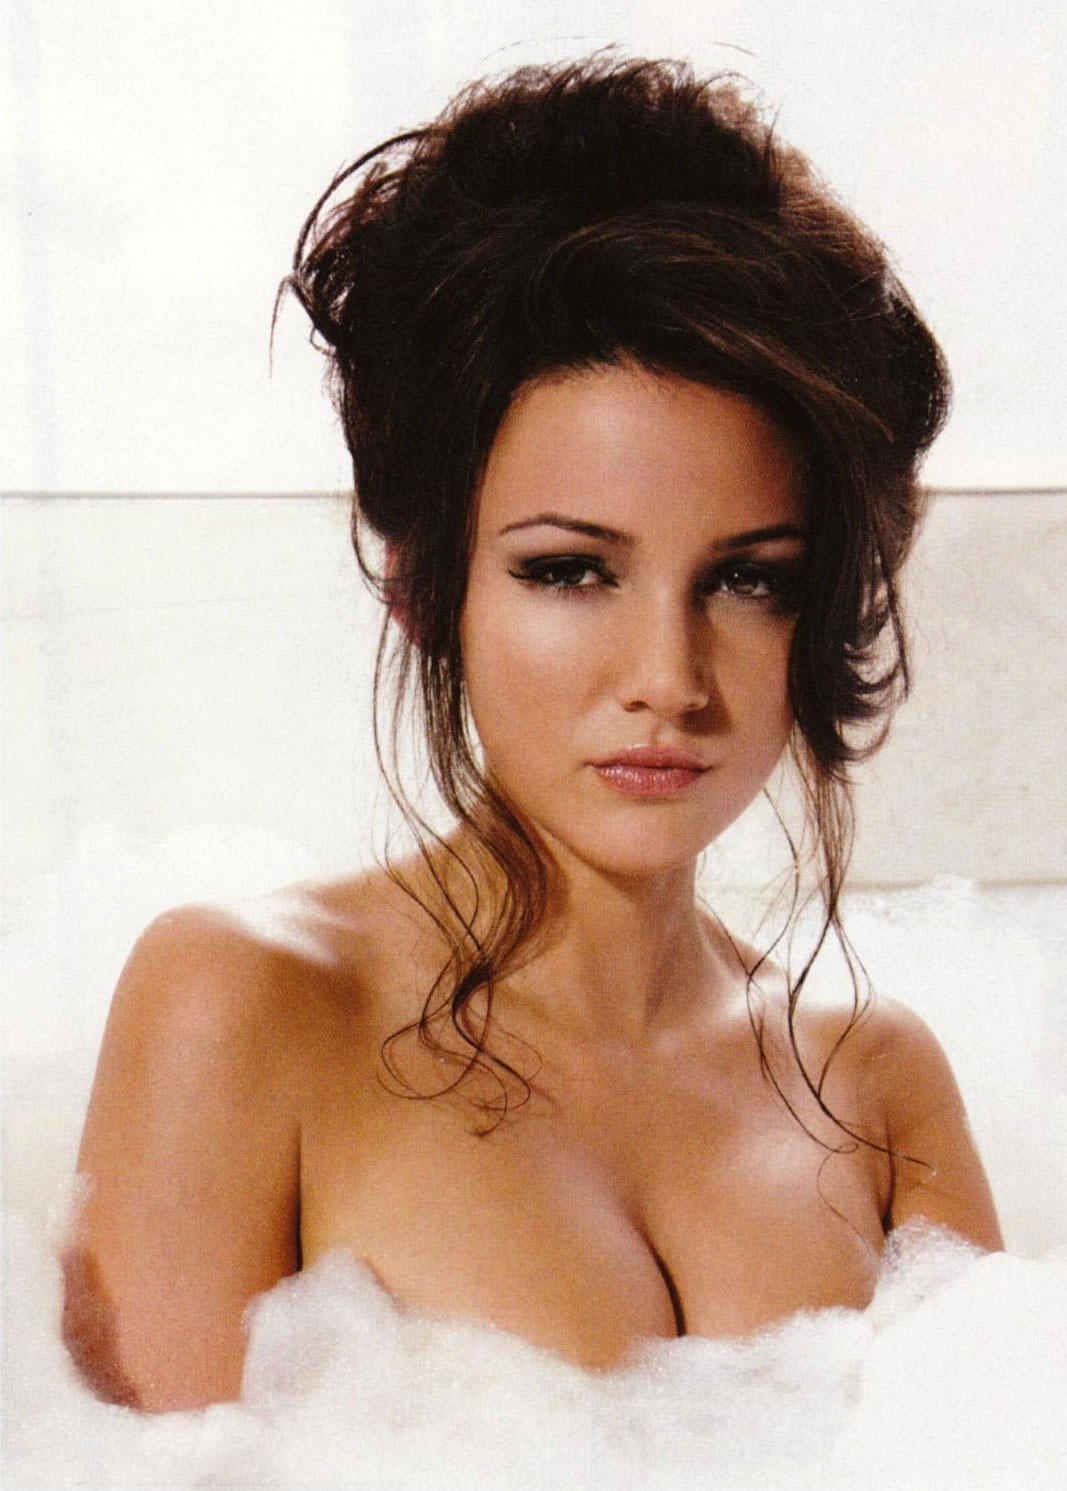 Michelle Keegan Fhm Magazine January Sexy